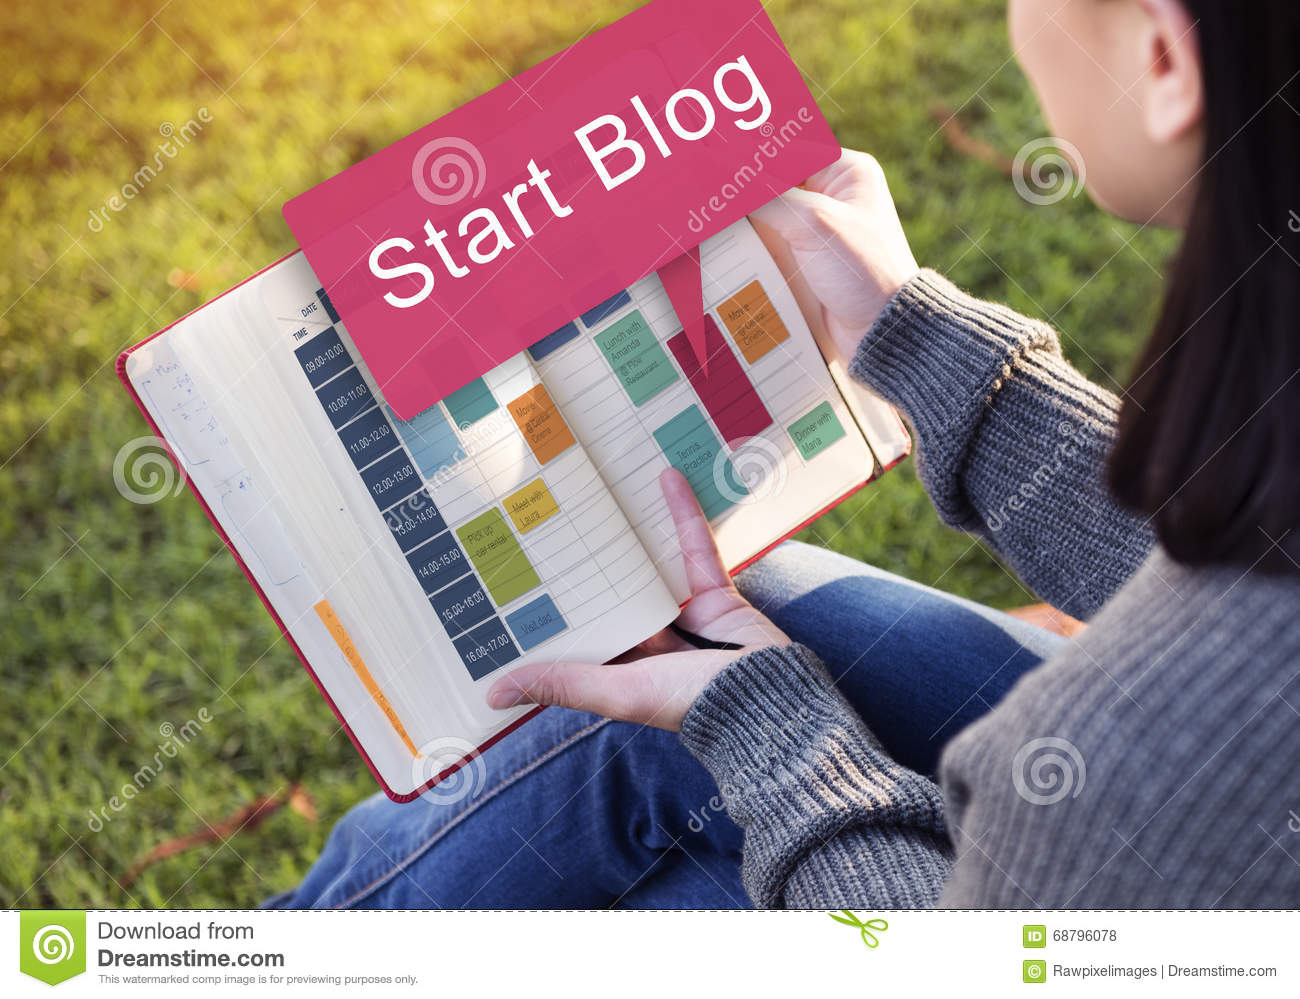 Download Start Blog Blogging Social Media Online Concept Stock Photo - Image of review, notes: 68796078